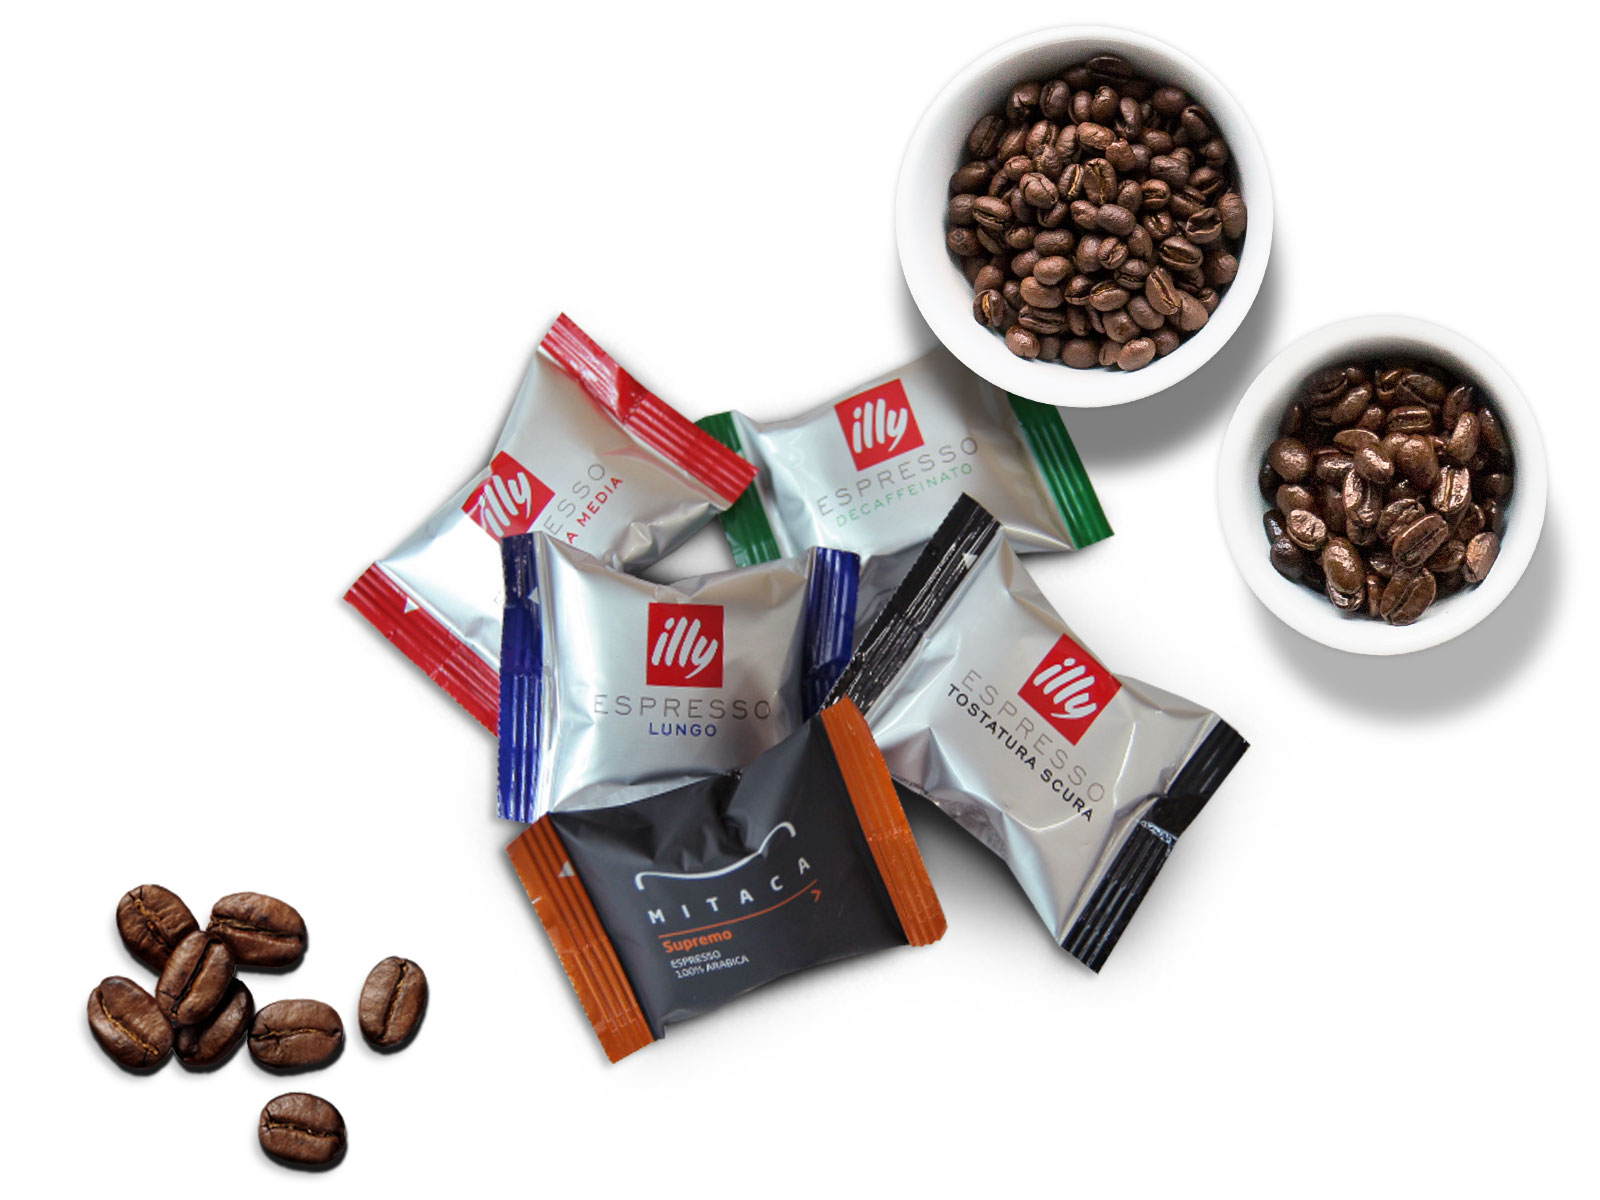 illy products